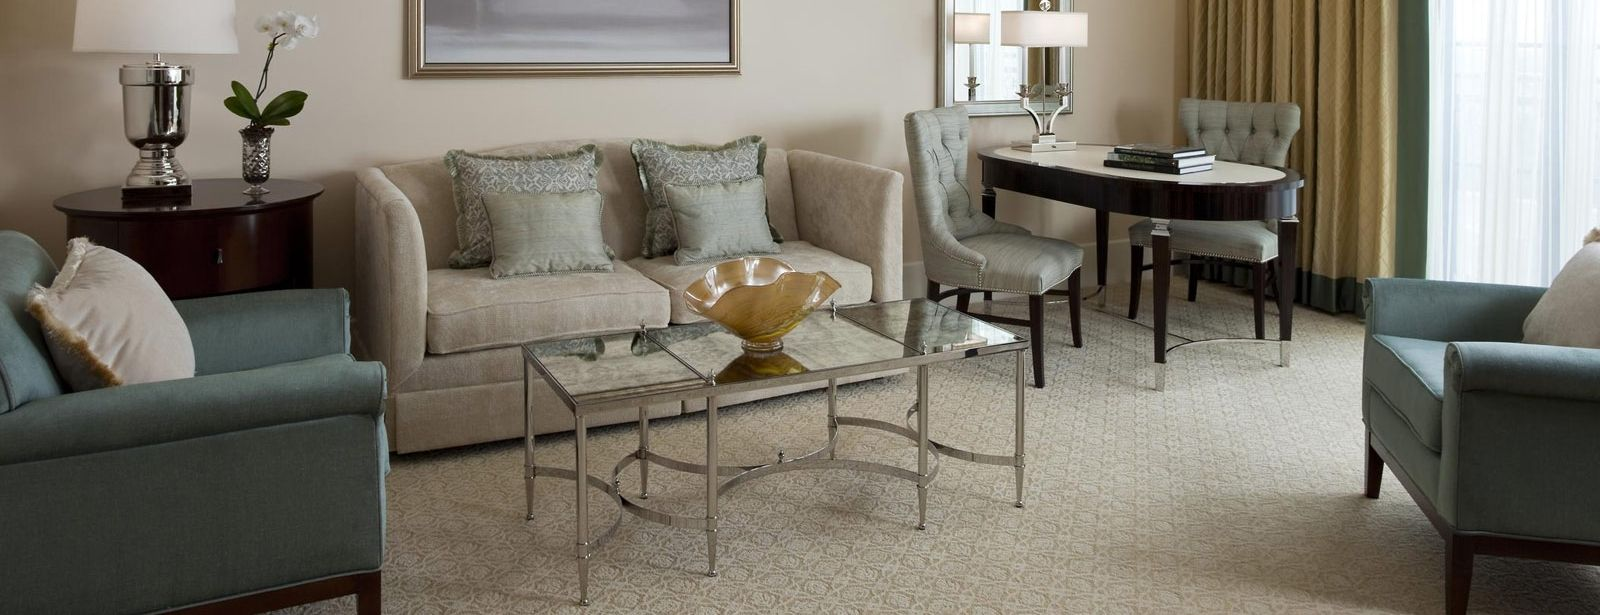 Metropolitan Suite | The St. Regis Atlanta